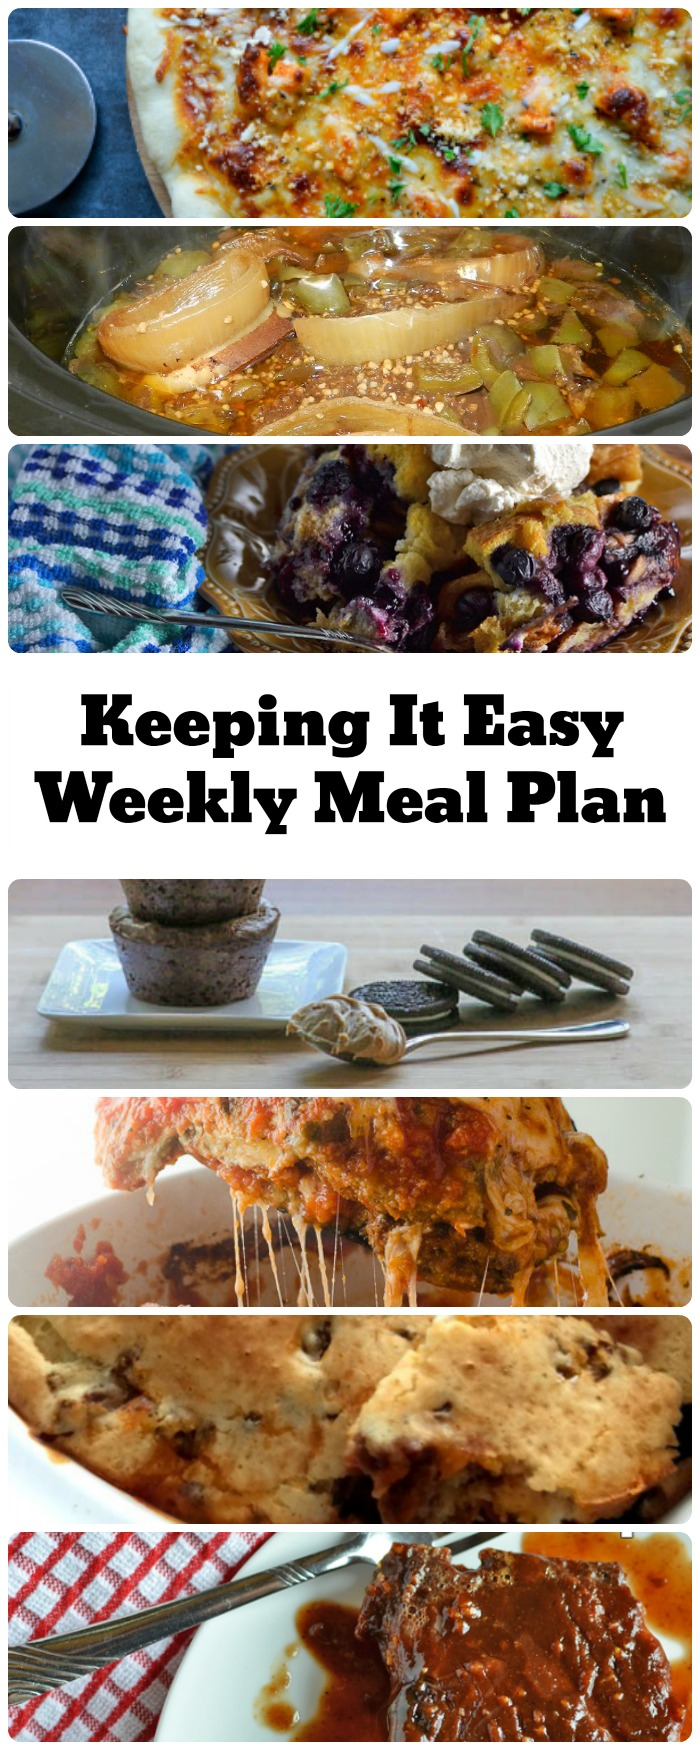 The Keeping it Easy Weekly Meal Plan offers a week's worth of meal ideas from top food bloggers.